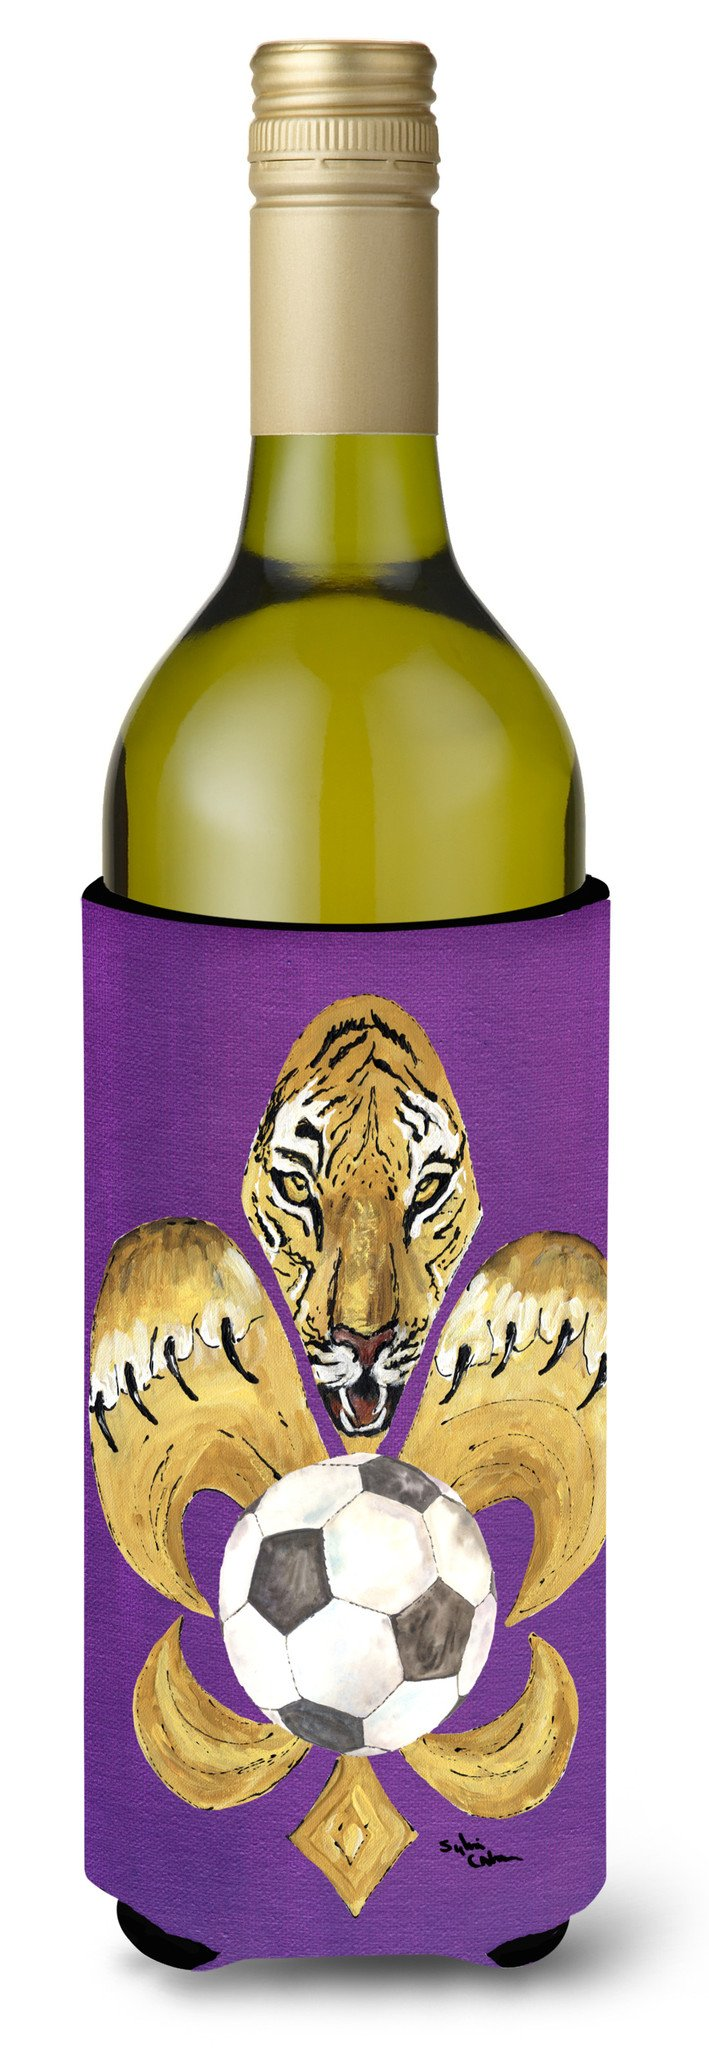 Tiger Fleur de lis Soccer Wine Bottle Beverage Insulator Beverage Insulator Hugger by Caroline's Treasures